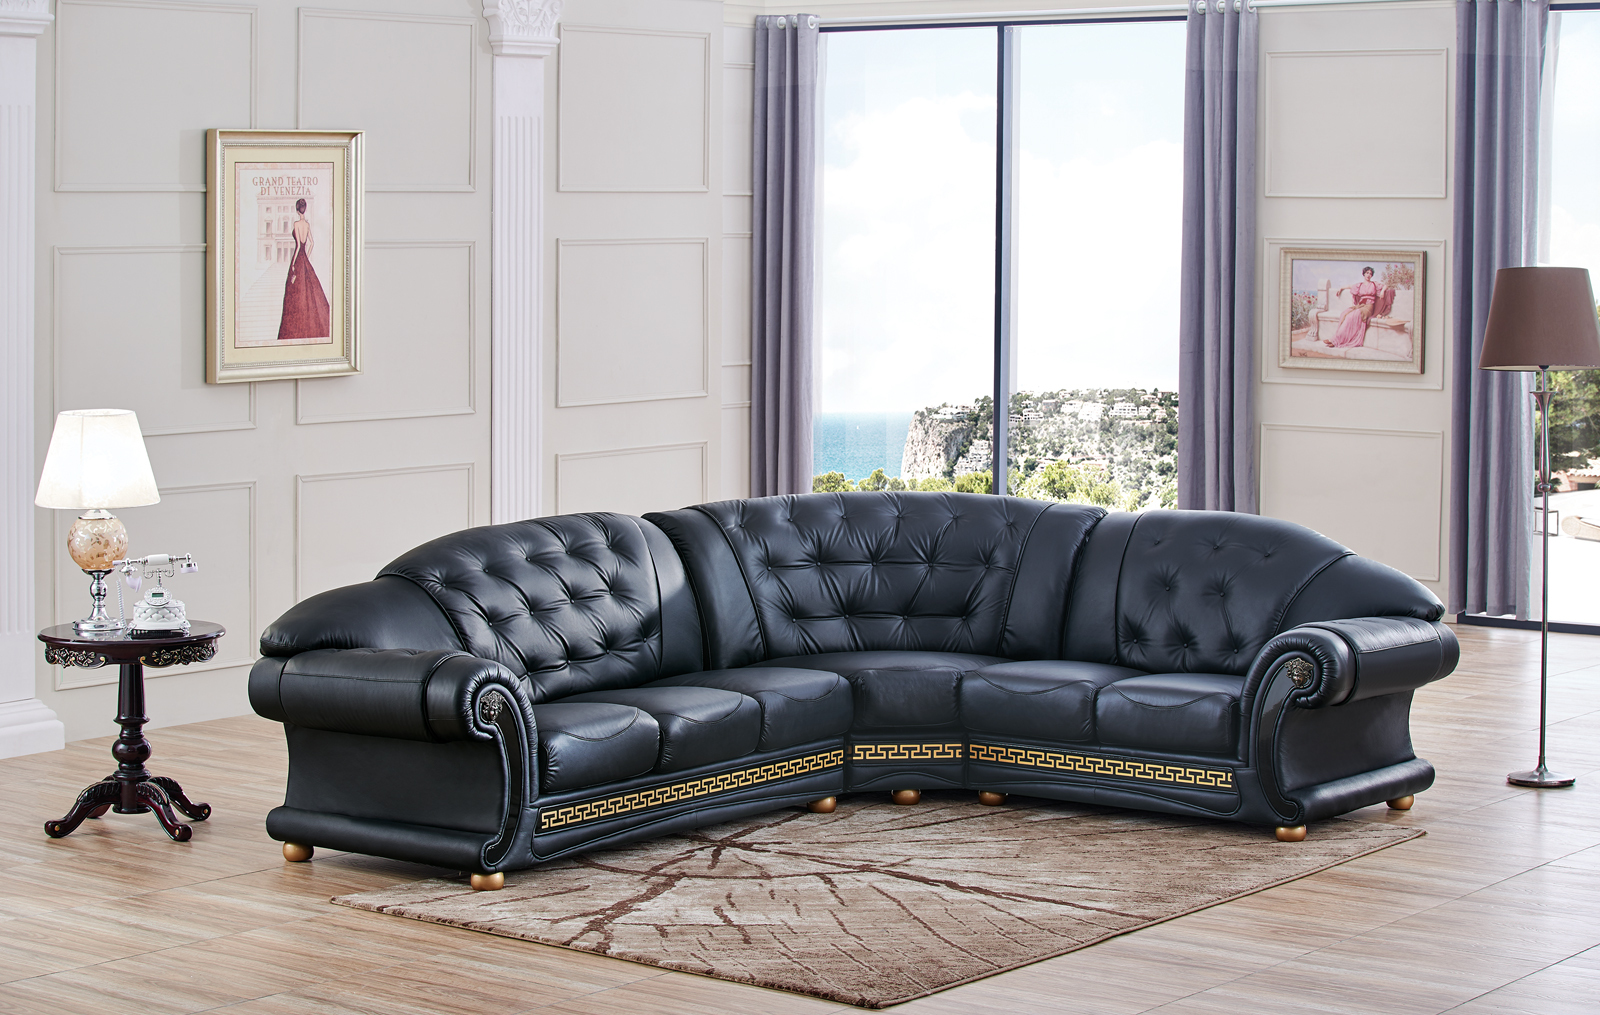 Apolo Sectional Black, Sectionals, Living Room Furniture